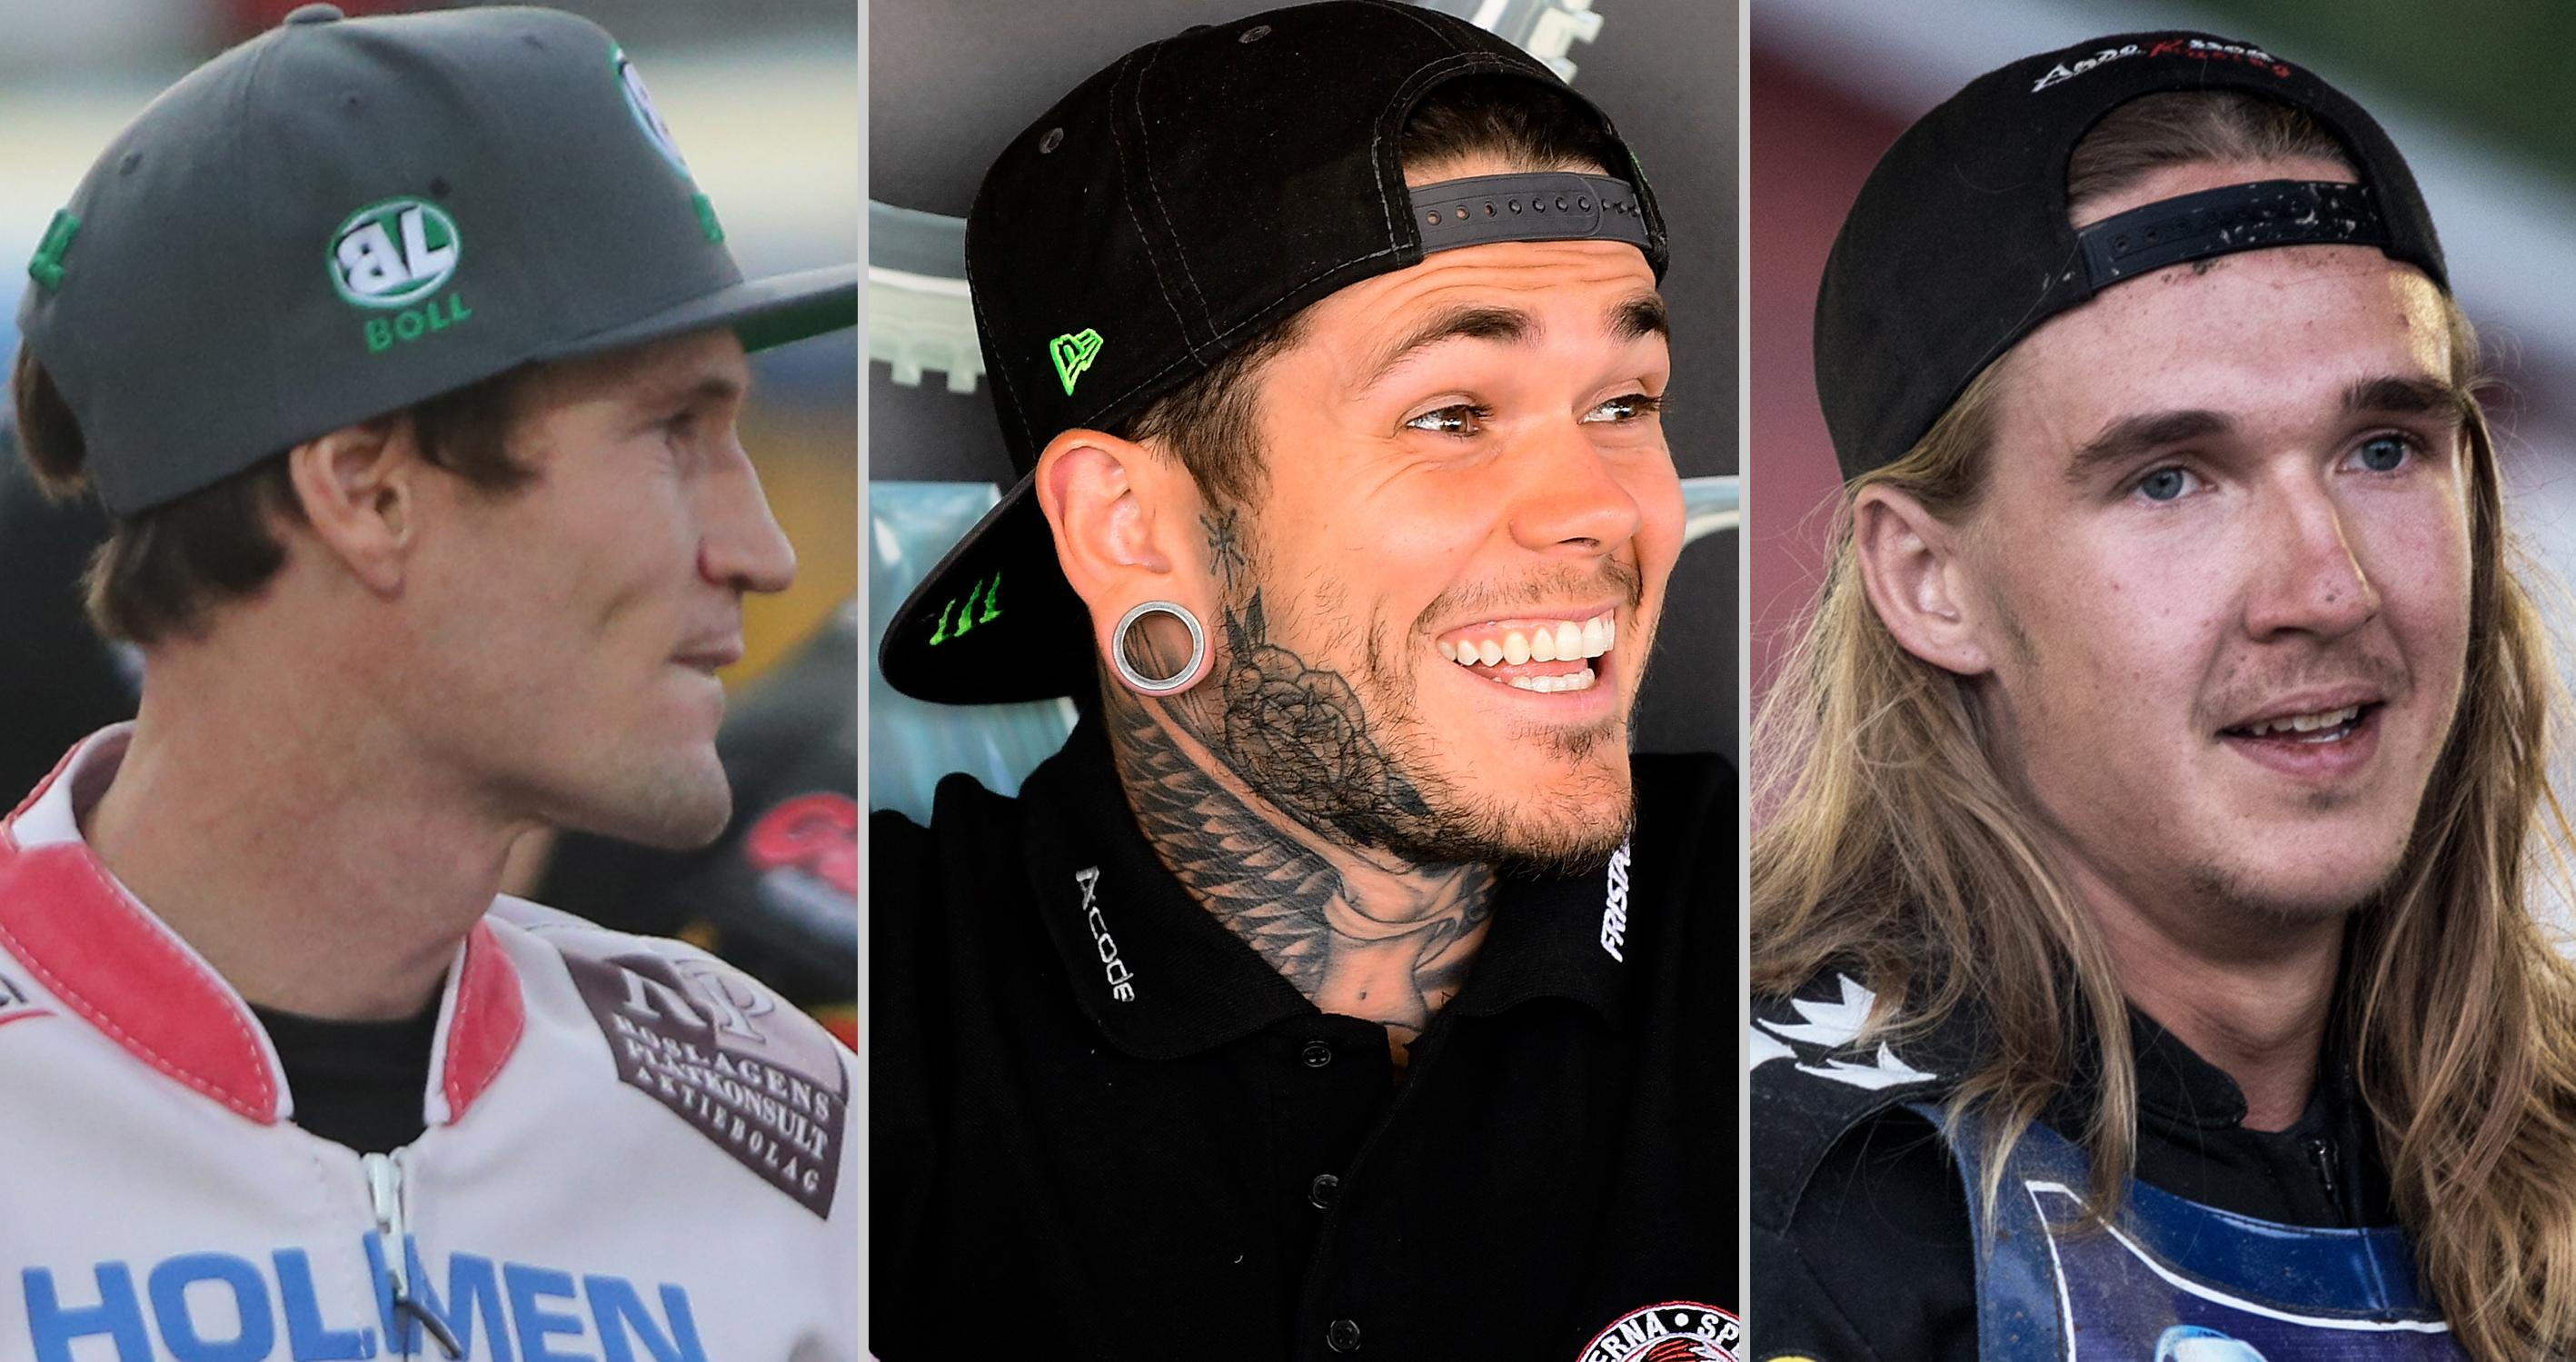 Jason Doyle, Tai Woffinden and Joel Andersson - Three hot drivers before 2019. Stock Photo: TT / DT / NT